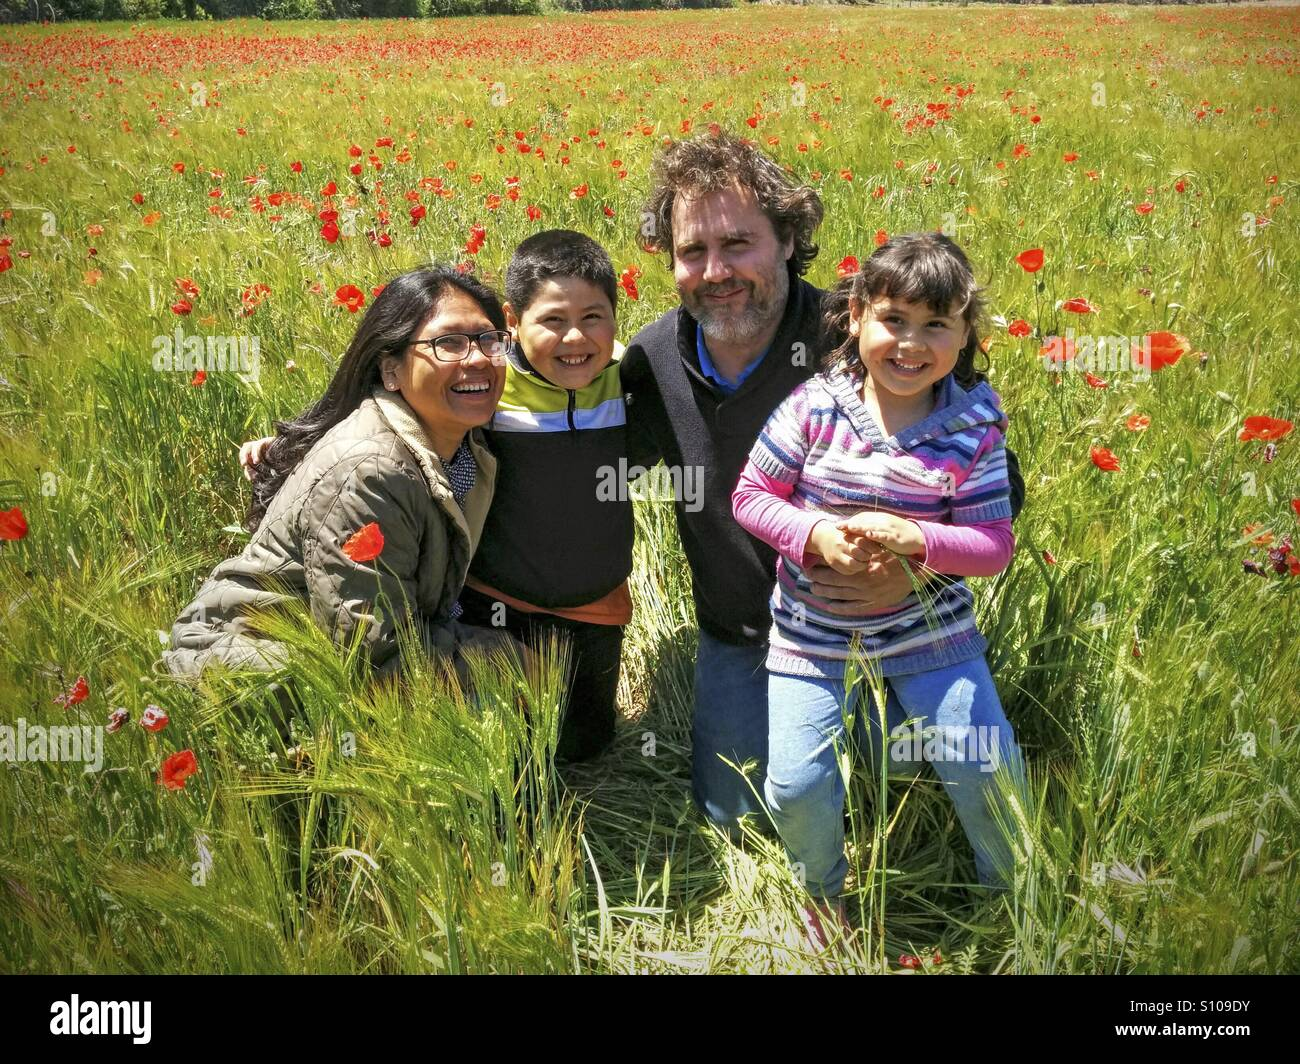 Interracial family. - Stock Image